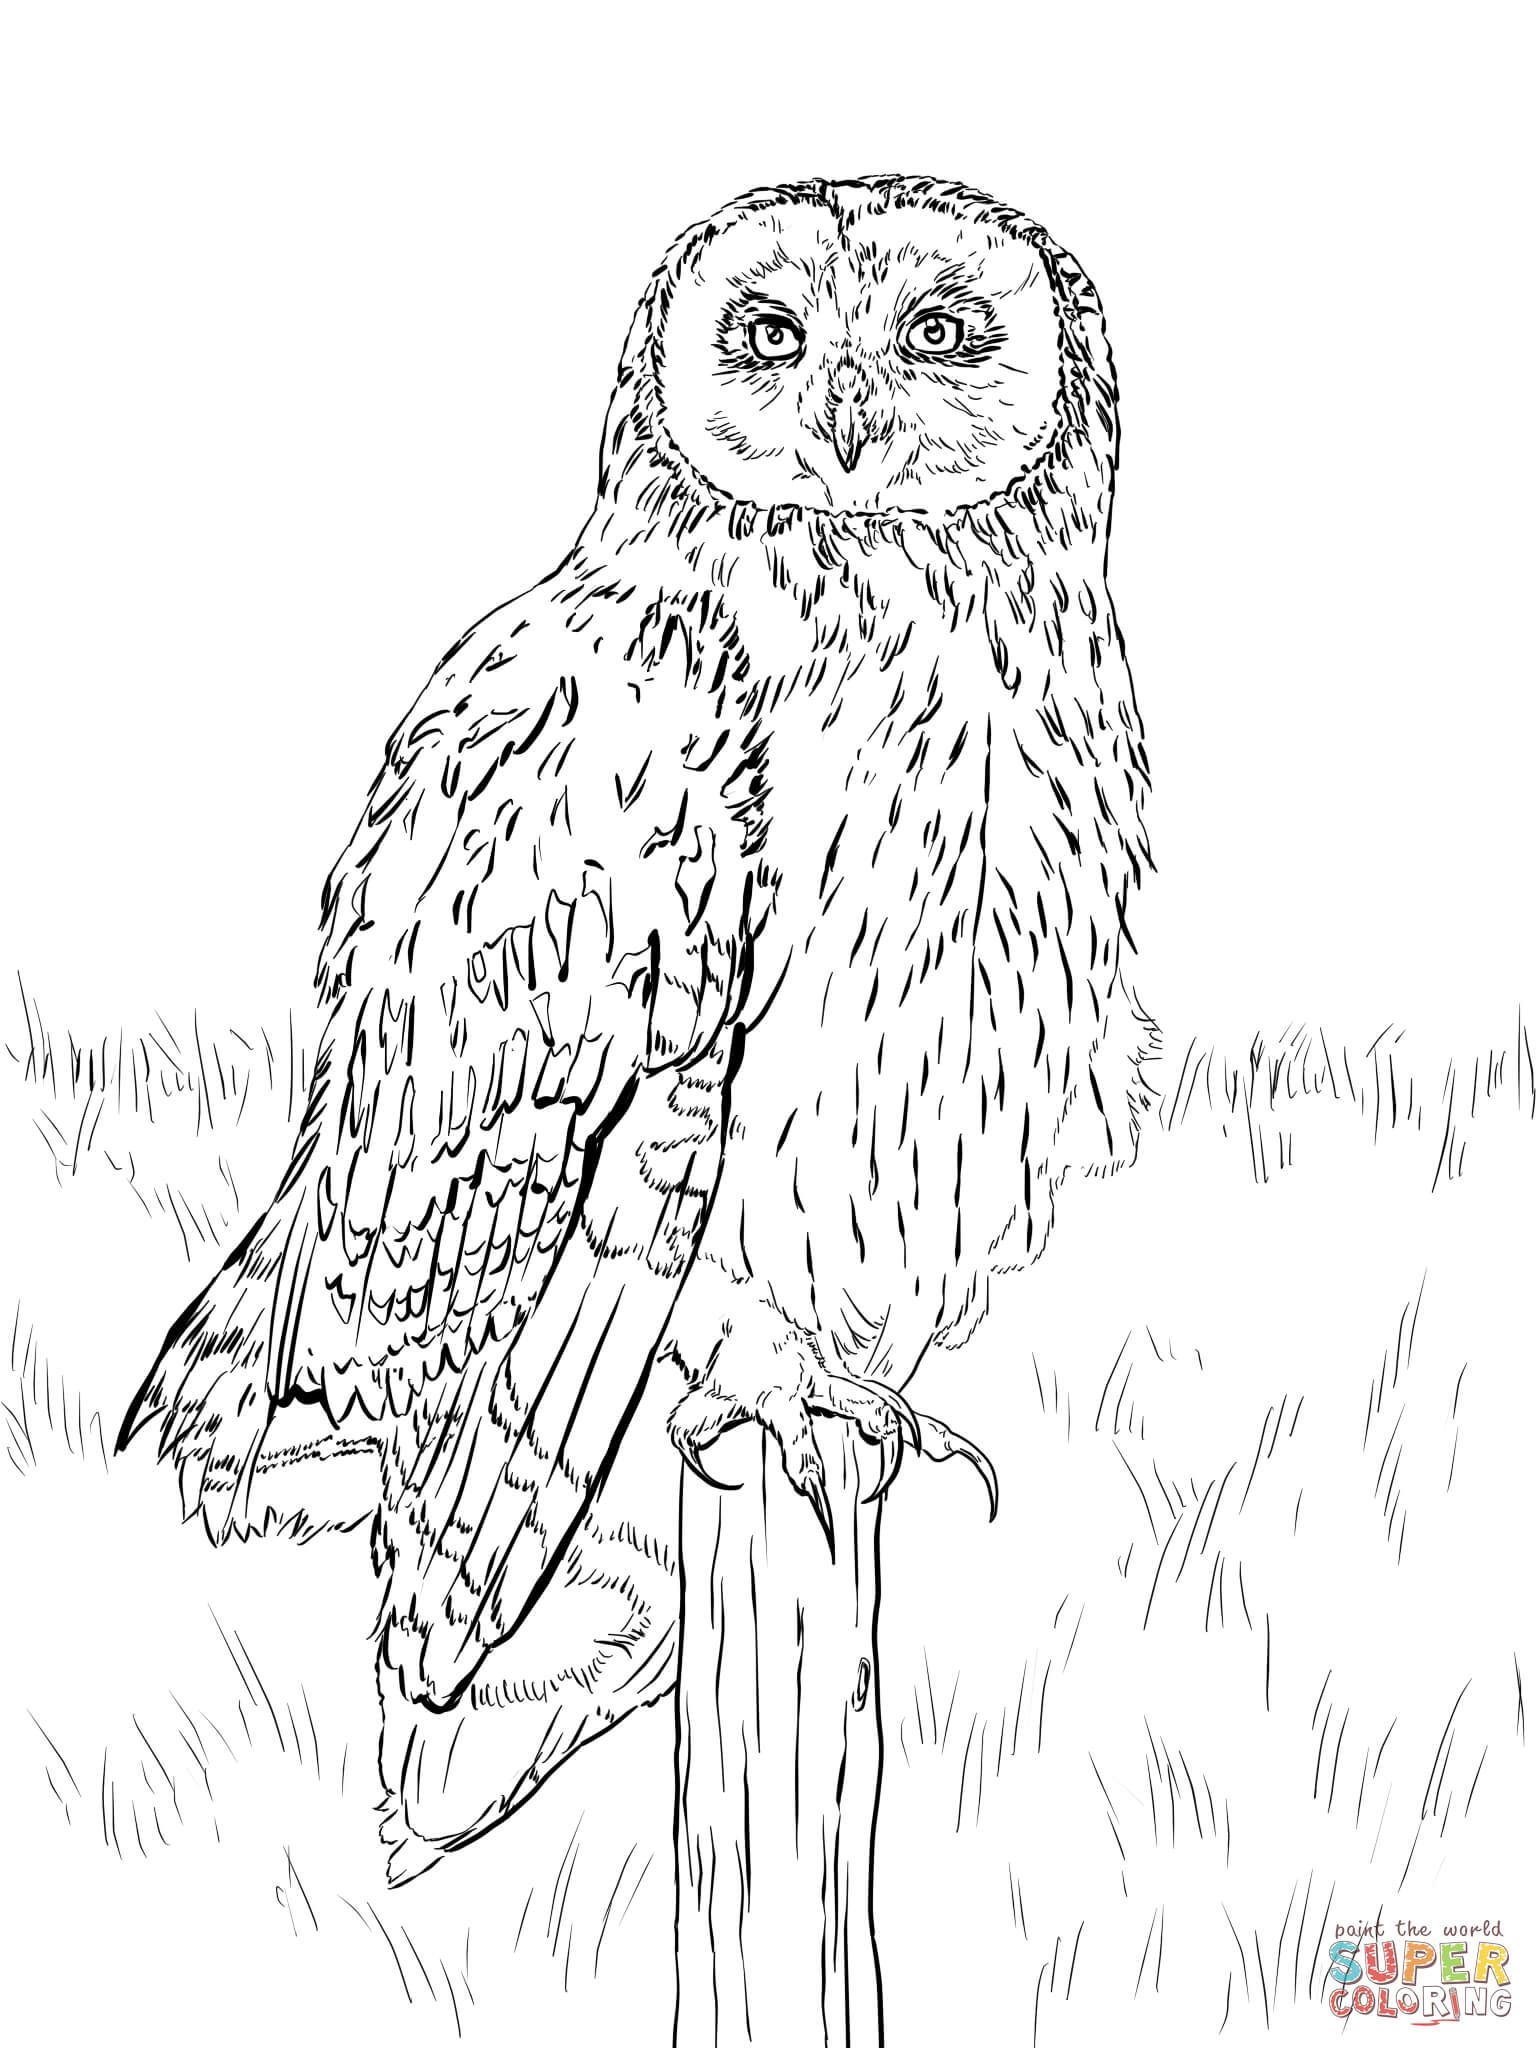 Pin by Małgorzata Kitka on Coloring pages - Owls | Pinterest | Short ...